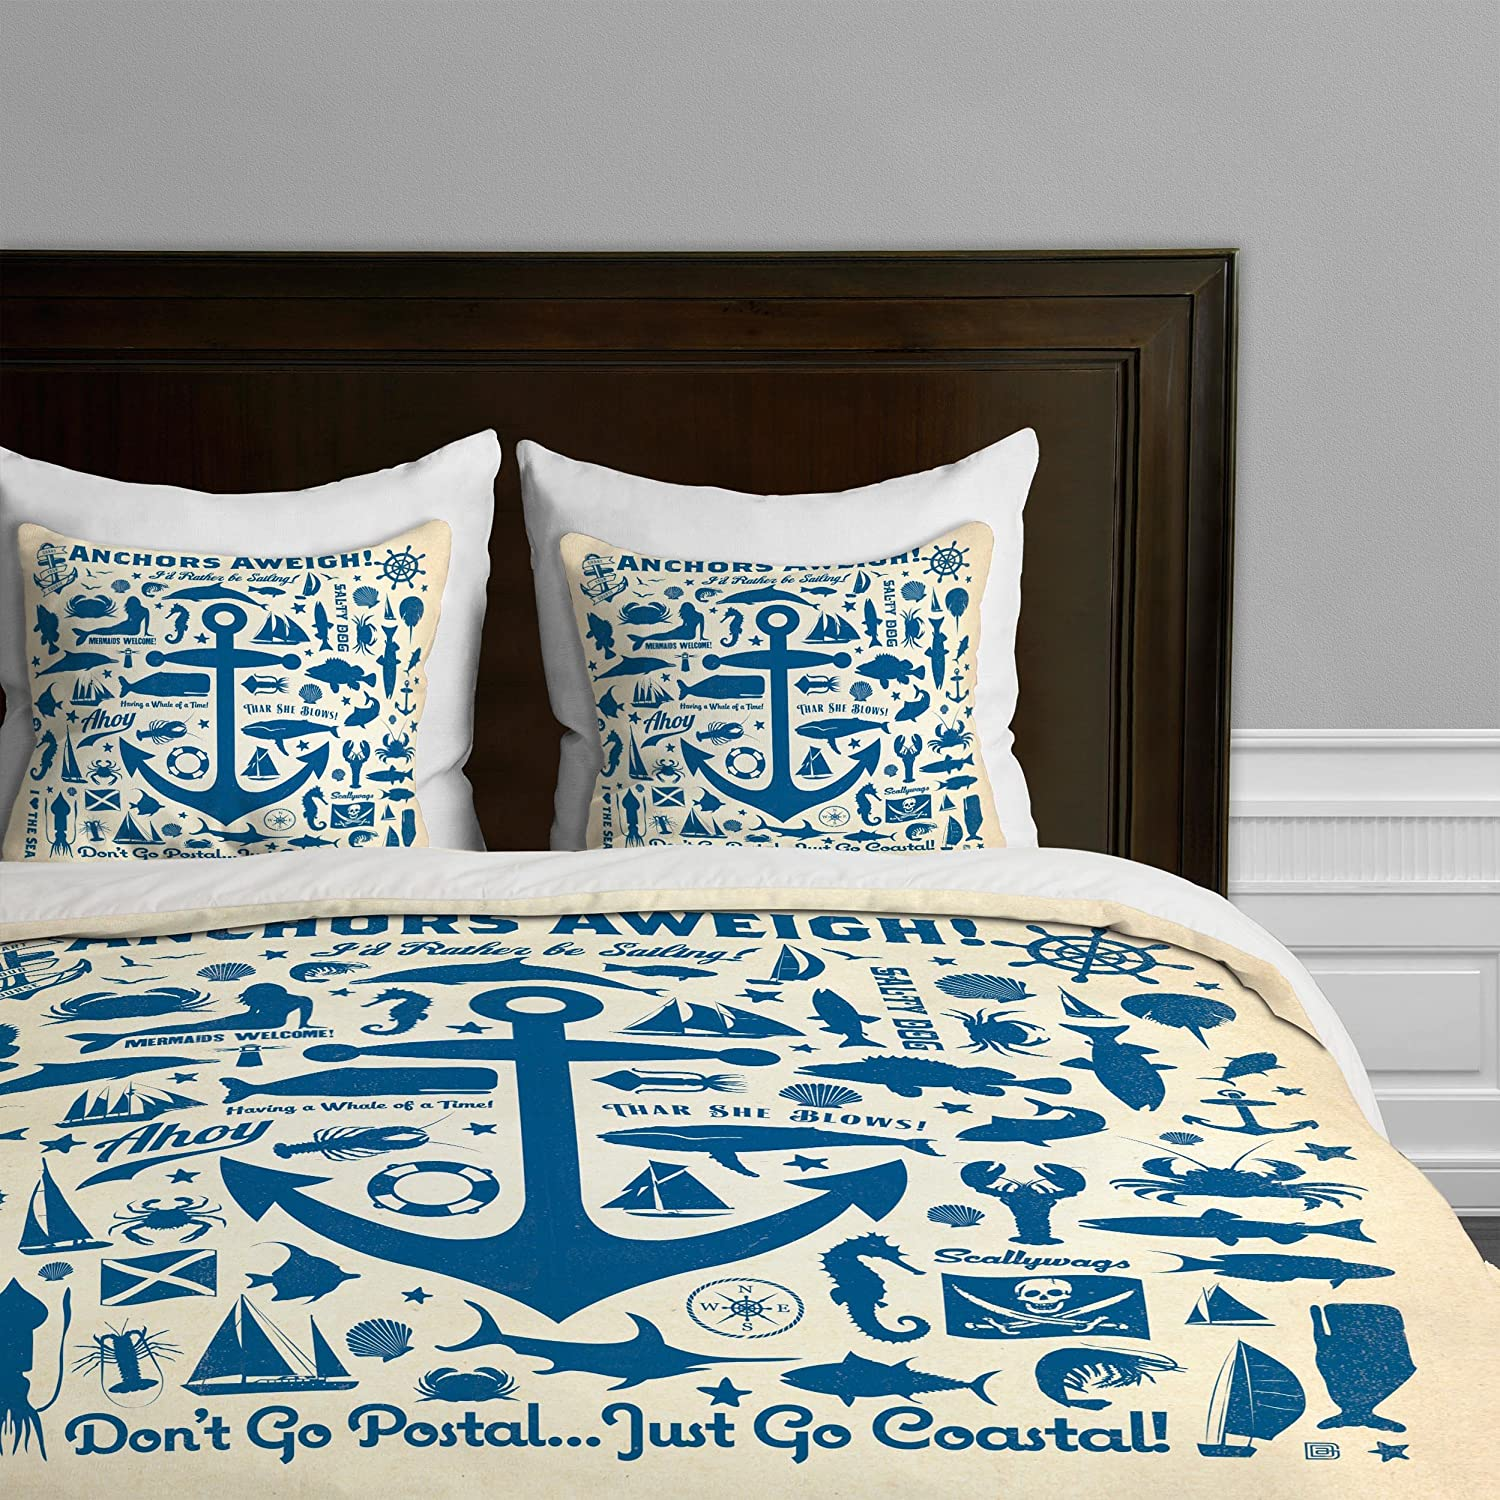 60 nautical bedding sets for nautical lovers deny designs anderson design group anchors away duvet cover queen gumiabroncs Images